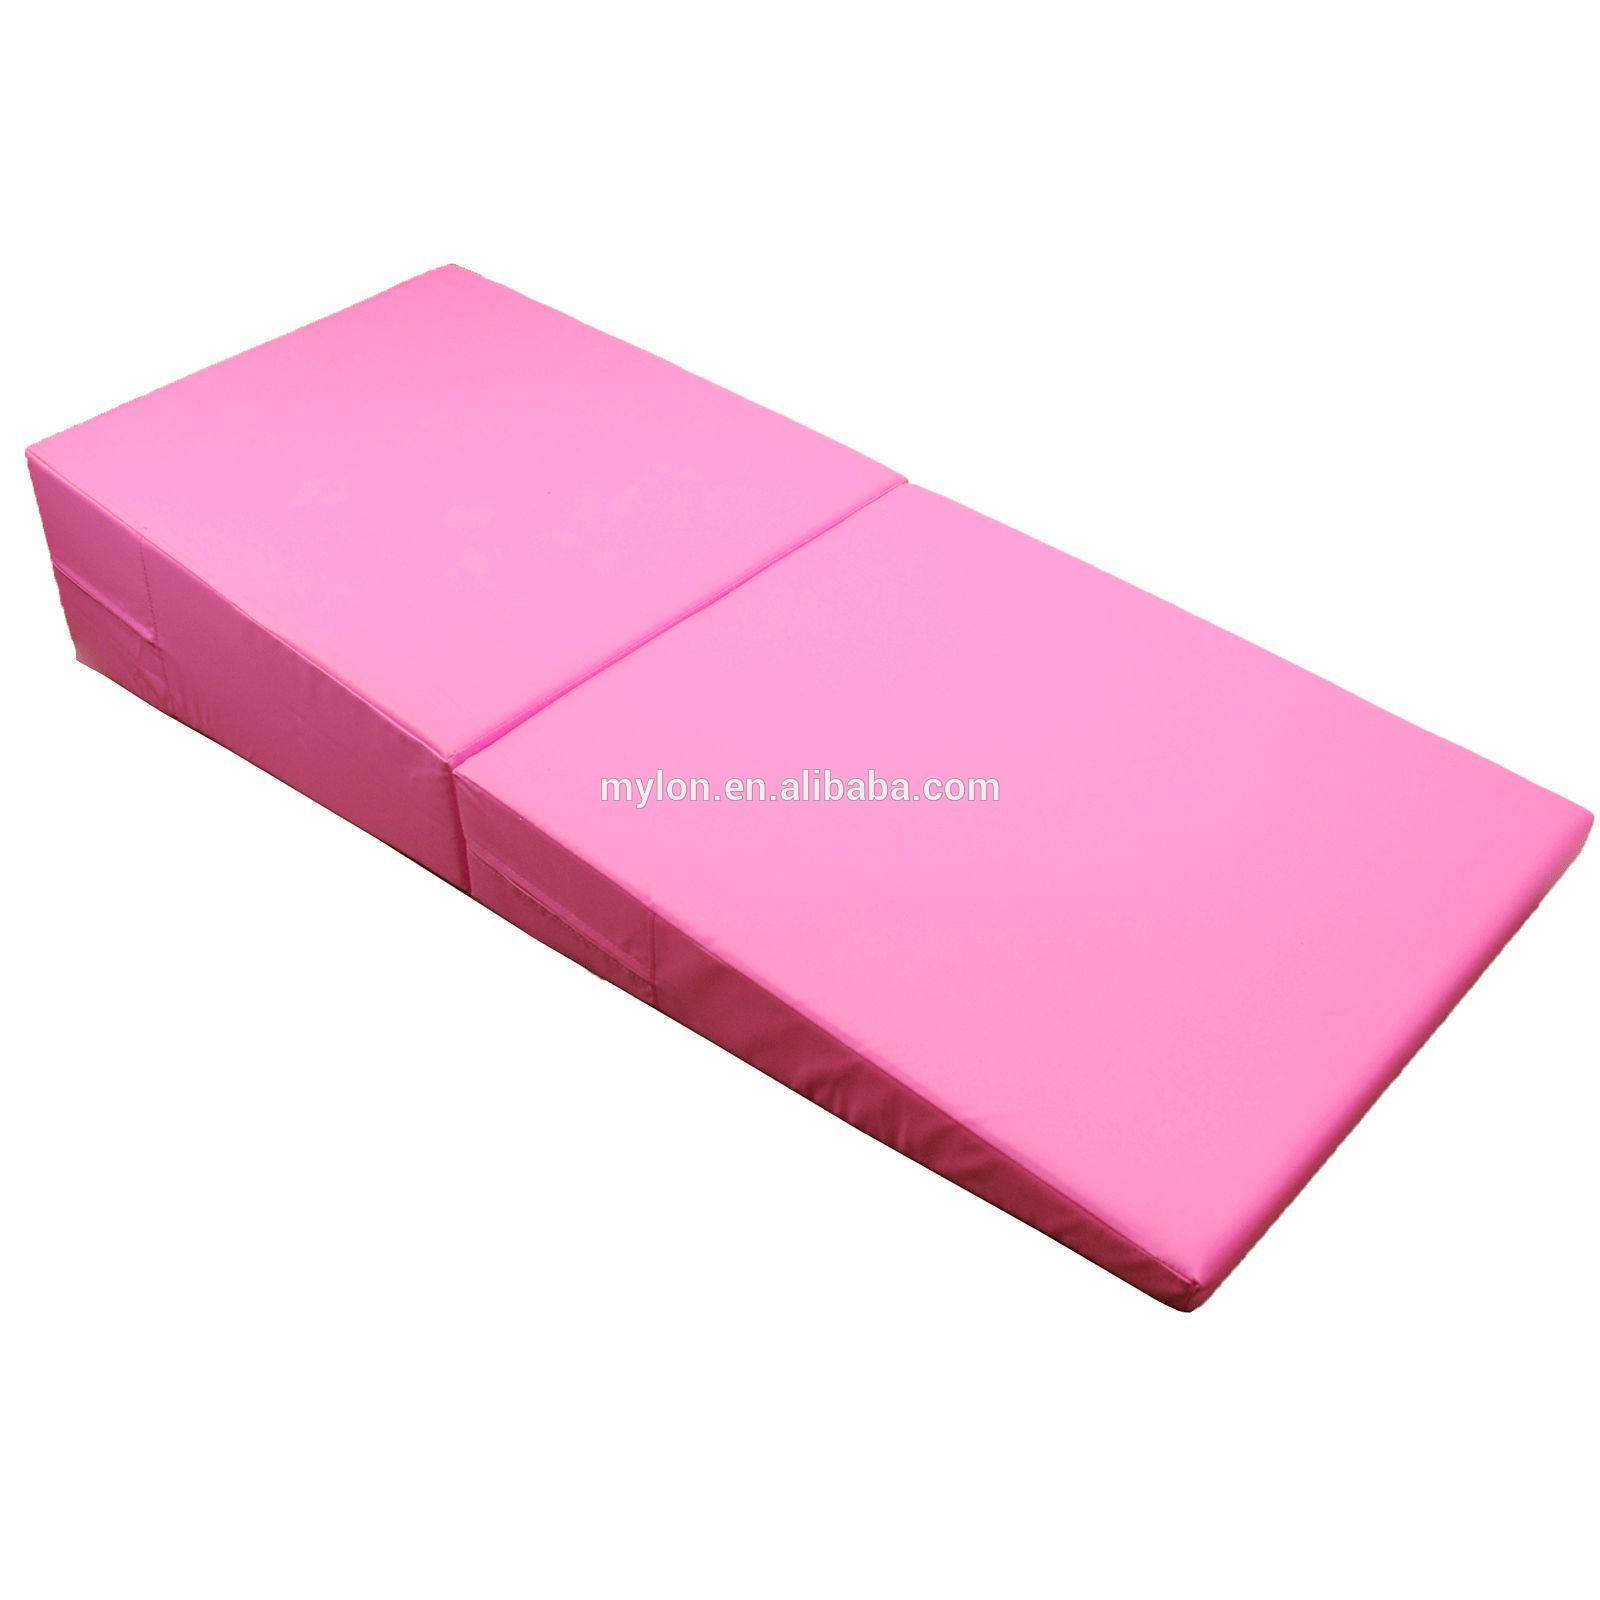 High Quality Folding Incline Gymnastics Mat Training Foam